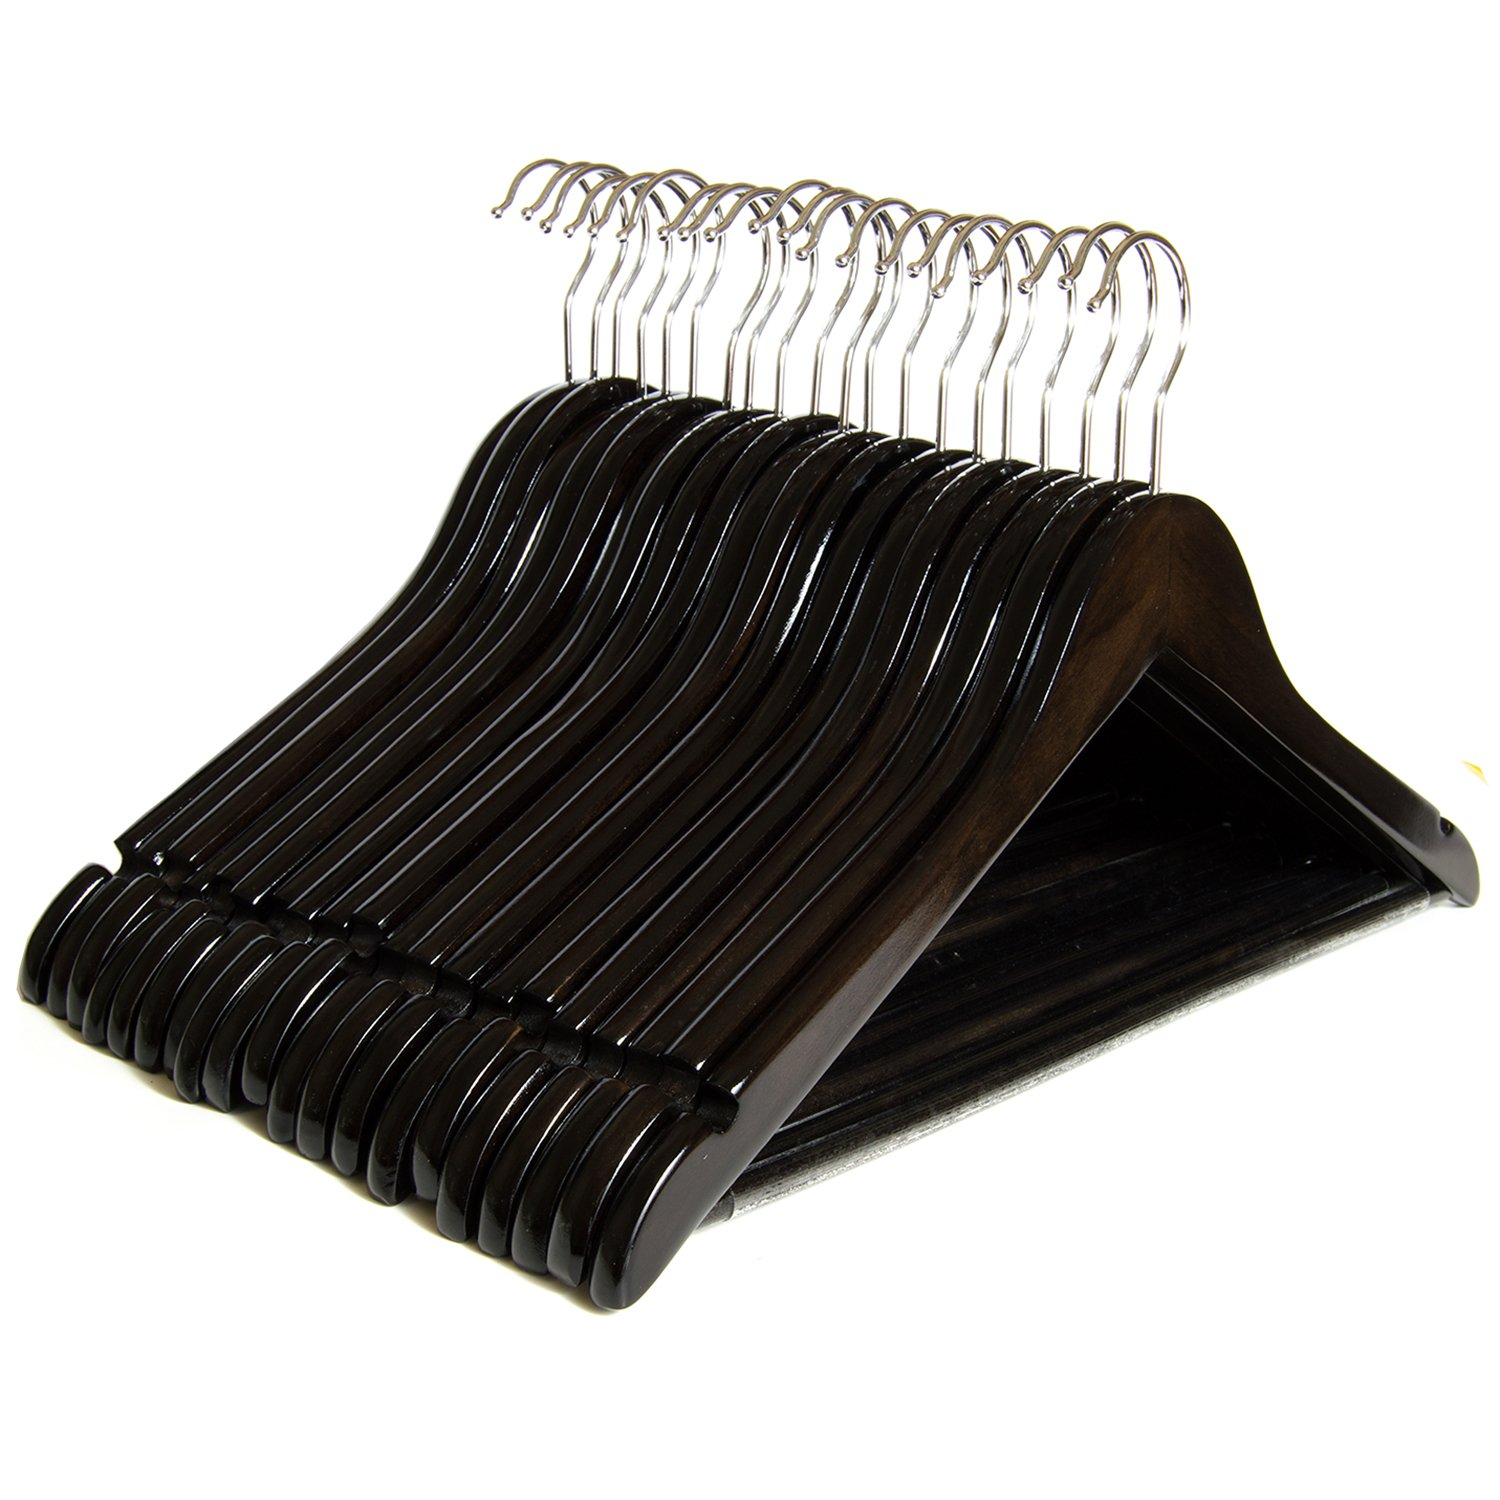 Clutter Mate Wood Clothes Hangers Dark Walnut Wooden Coat Hanger 20-Pack by Clutter Mate (Image #8)